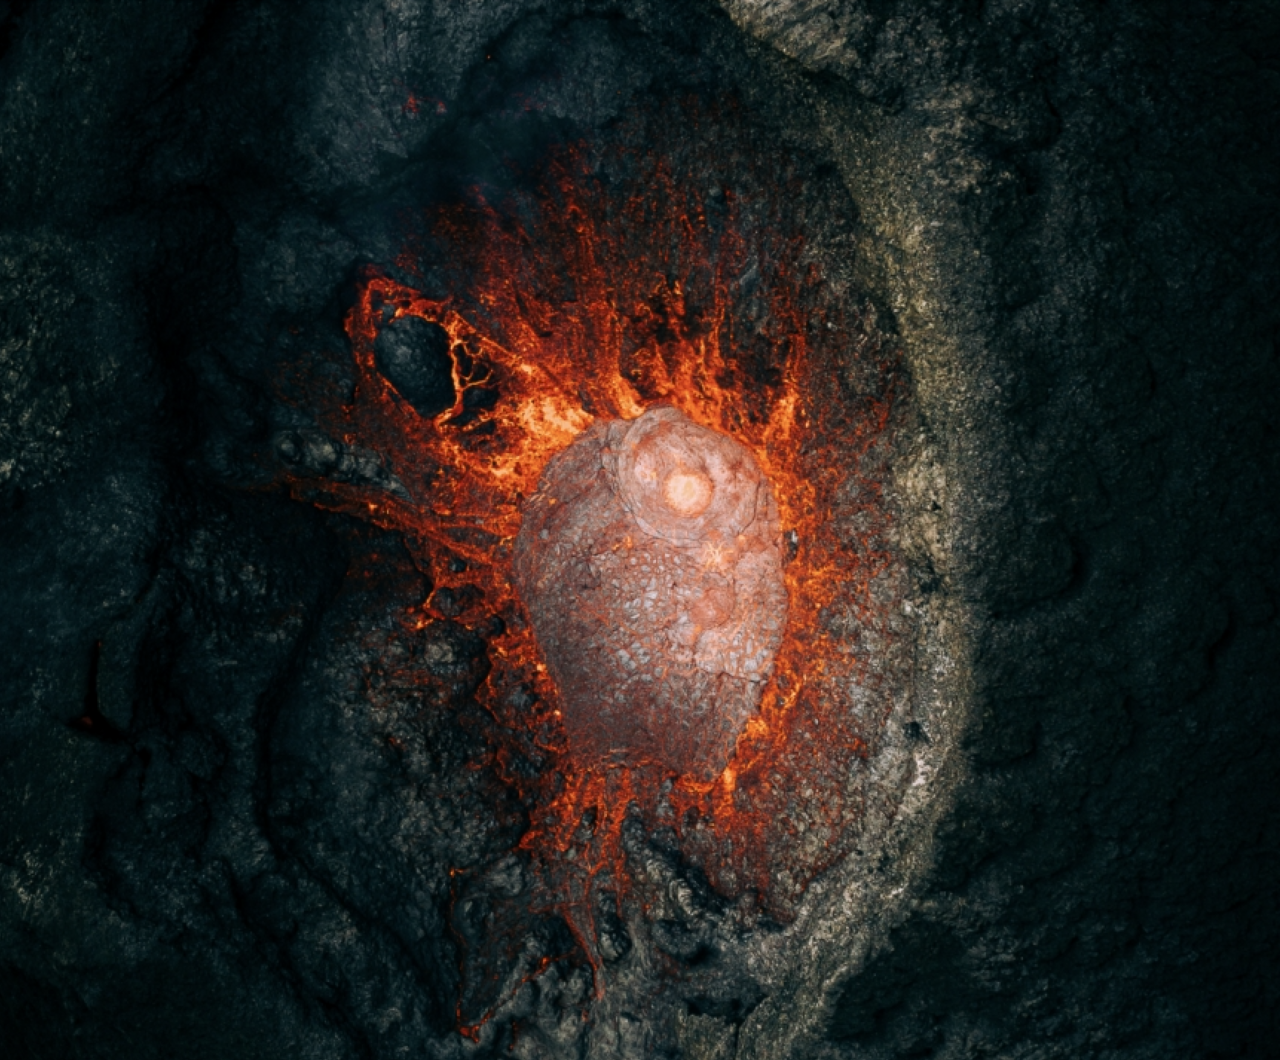 <em>Extragalactic</em> won the 1st Classified award in the Nature category of this year's Drone Photo Awards.